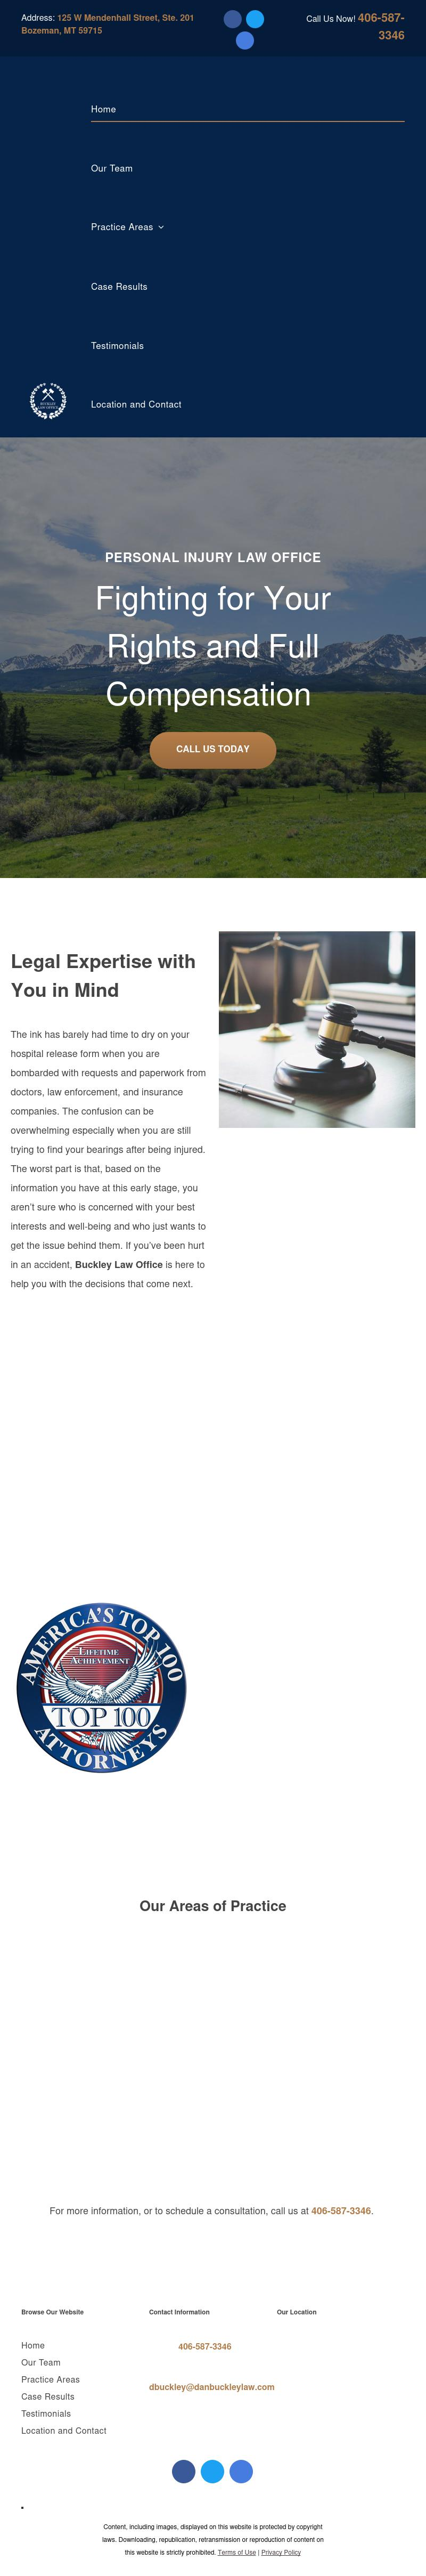 Buckley Law Office, P.C. - Bozeman MT Lawyers